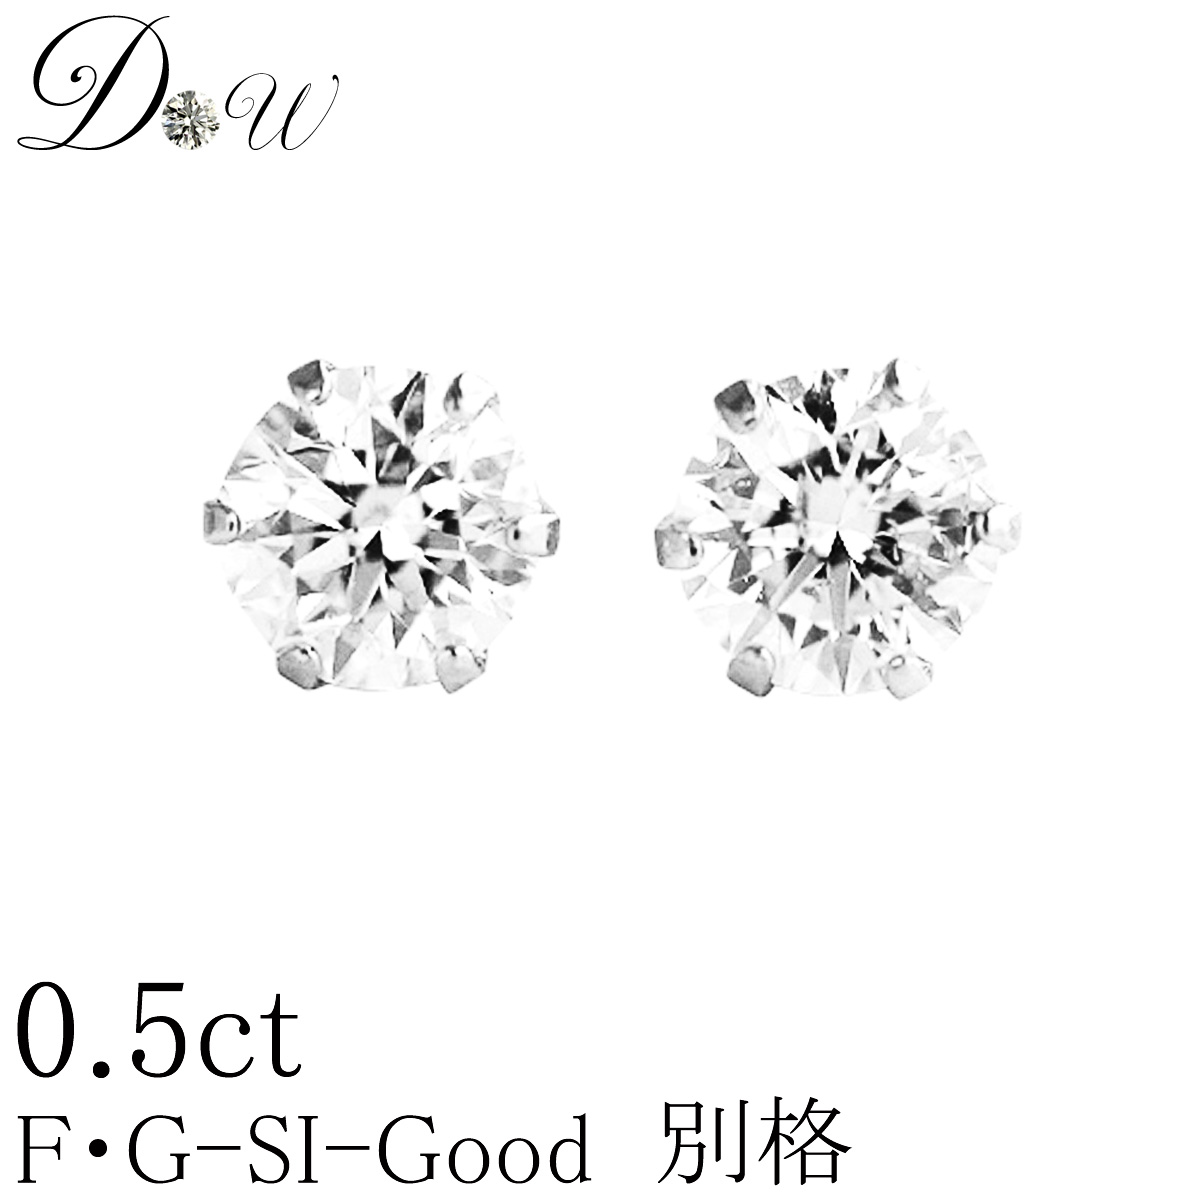 93855a4df8e5a Total one 0.25ct X 0.25ct 0.50ct diamond pierced earrings one platinum for  PT900 natural diamond pierced earrings 0.50ct both ears in total